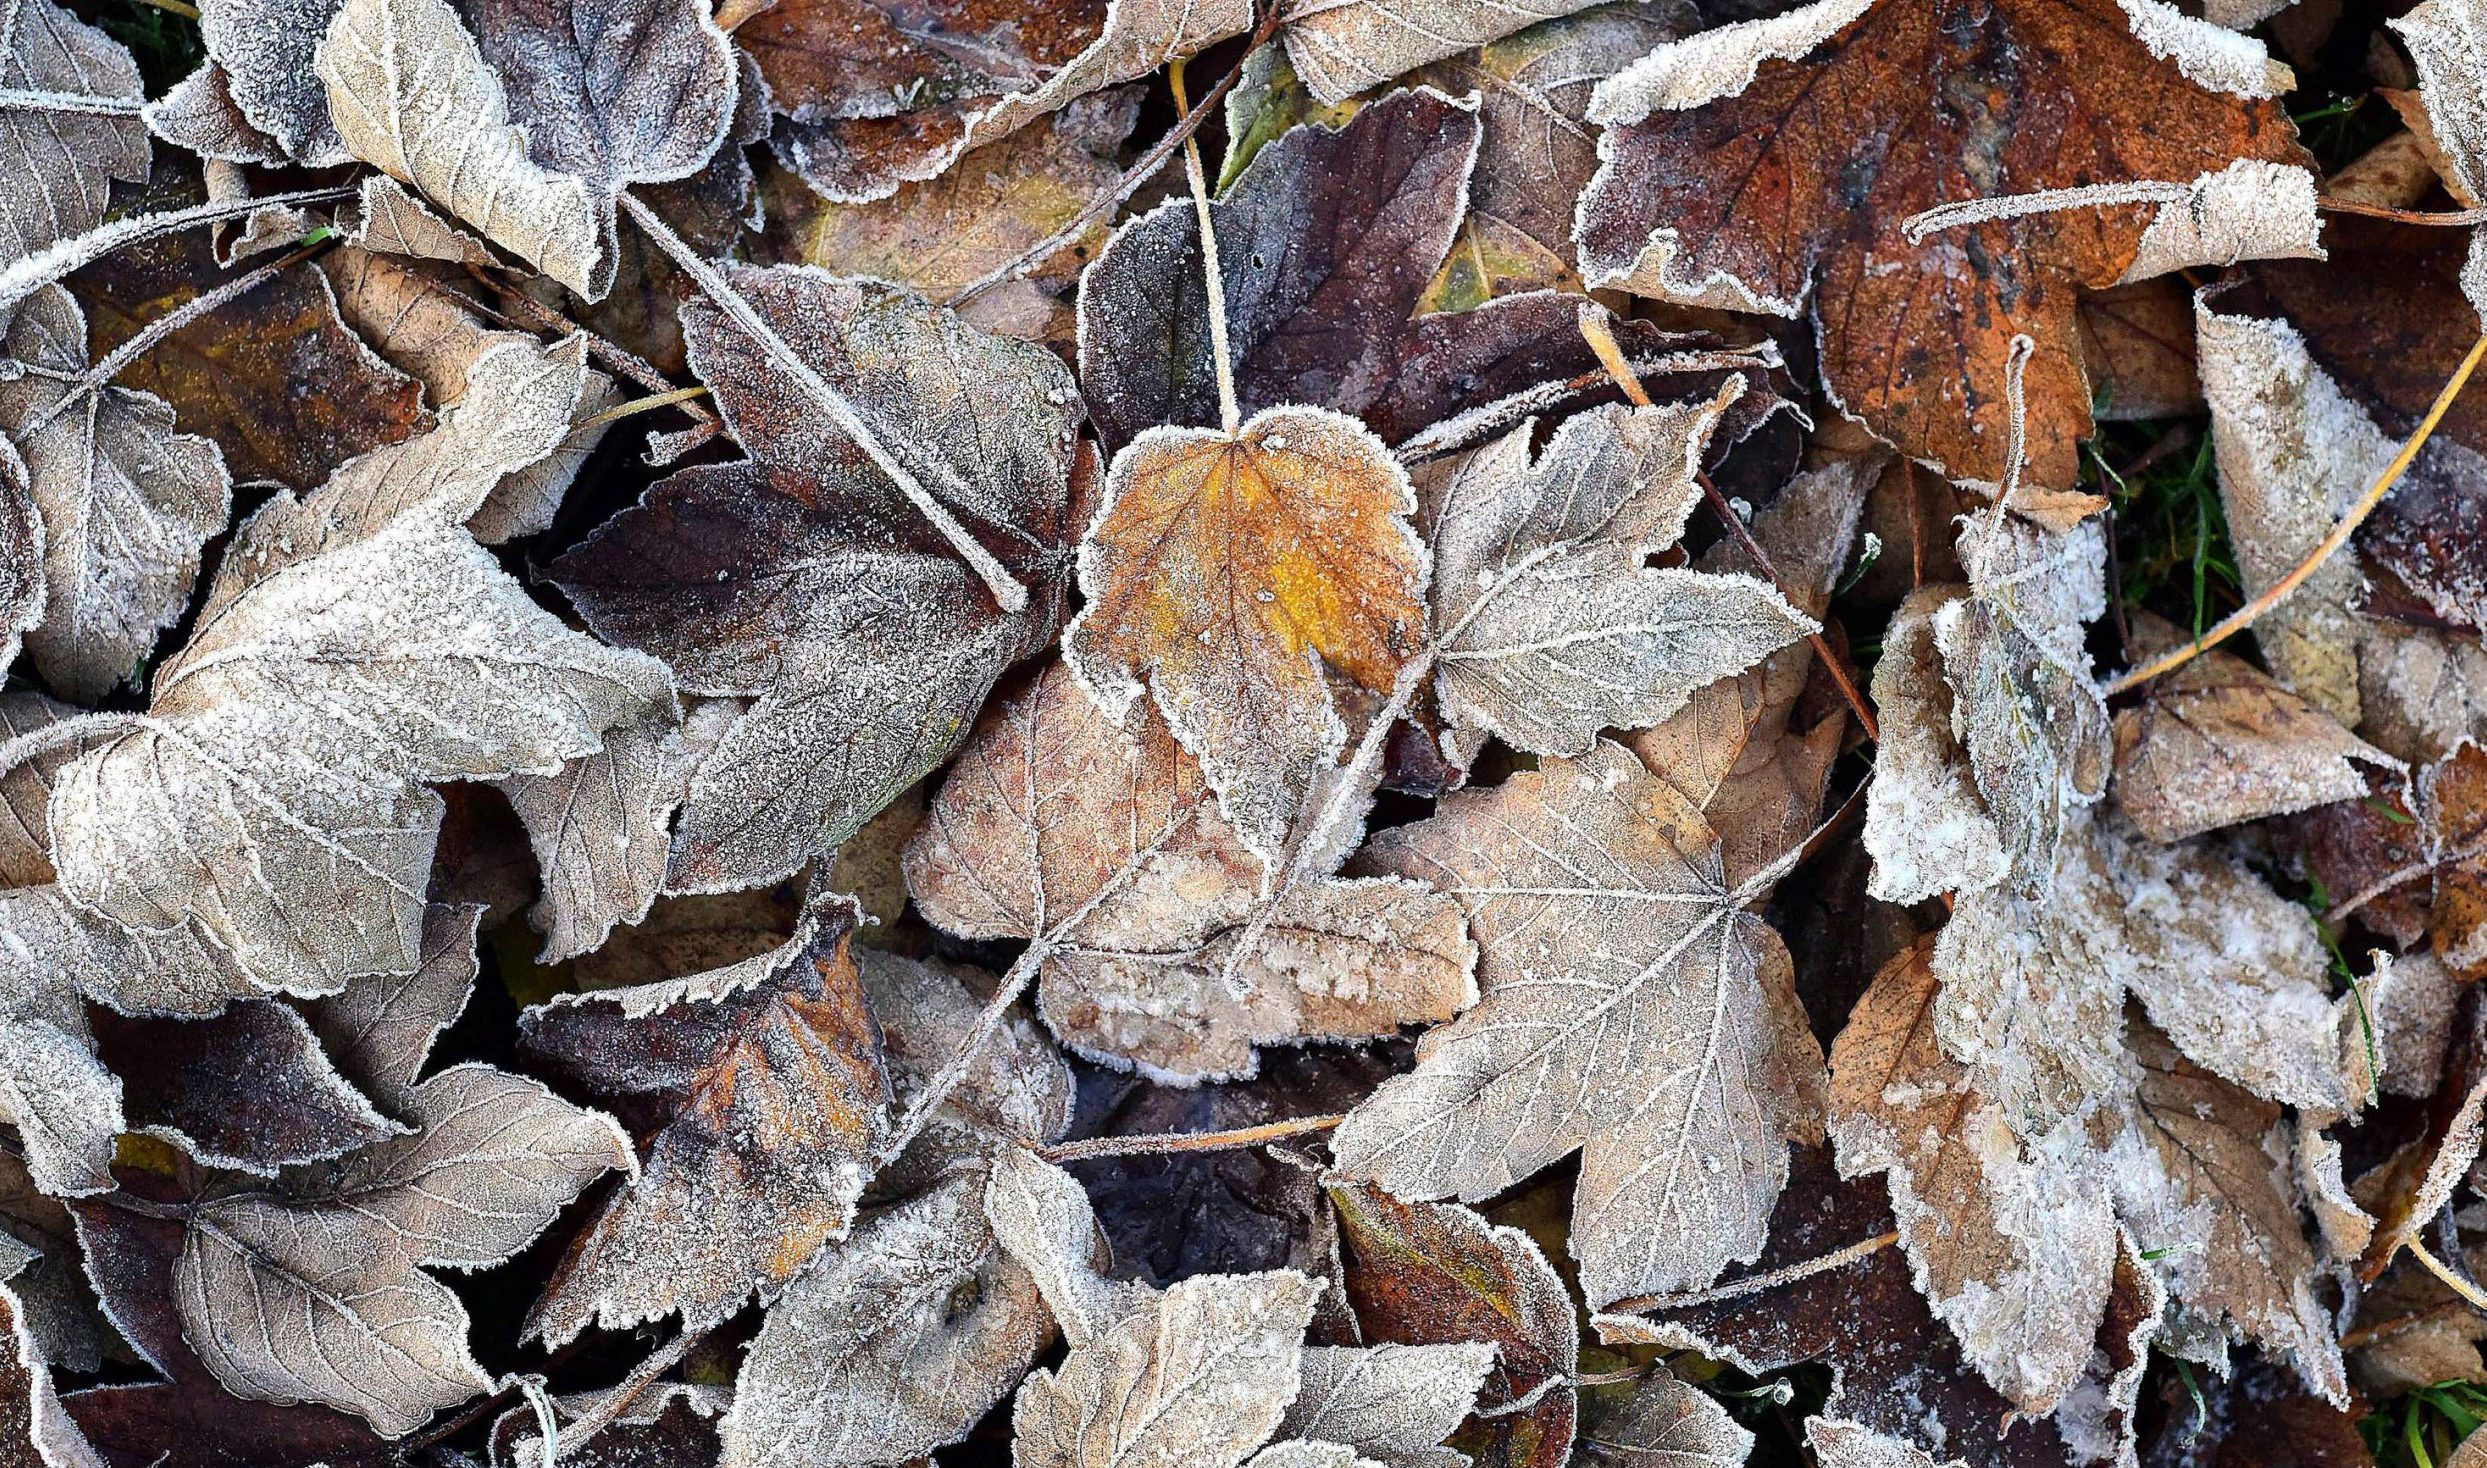 Dated: 18/11/2018 AUTUMN TO WINTER ... Frost covered fallen leaves in Darlington, County Durham today (SUN) with forecasters predicting a blast of winter weather to hit the UK next week with snow and severe frosts expected. See weather round-up